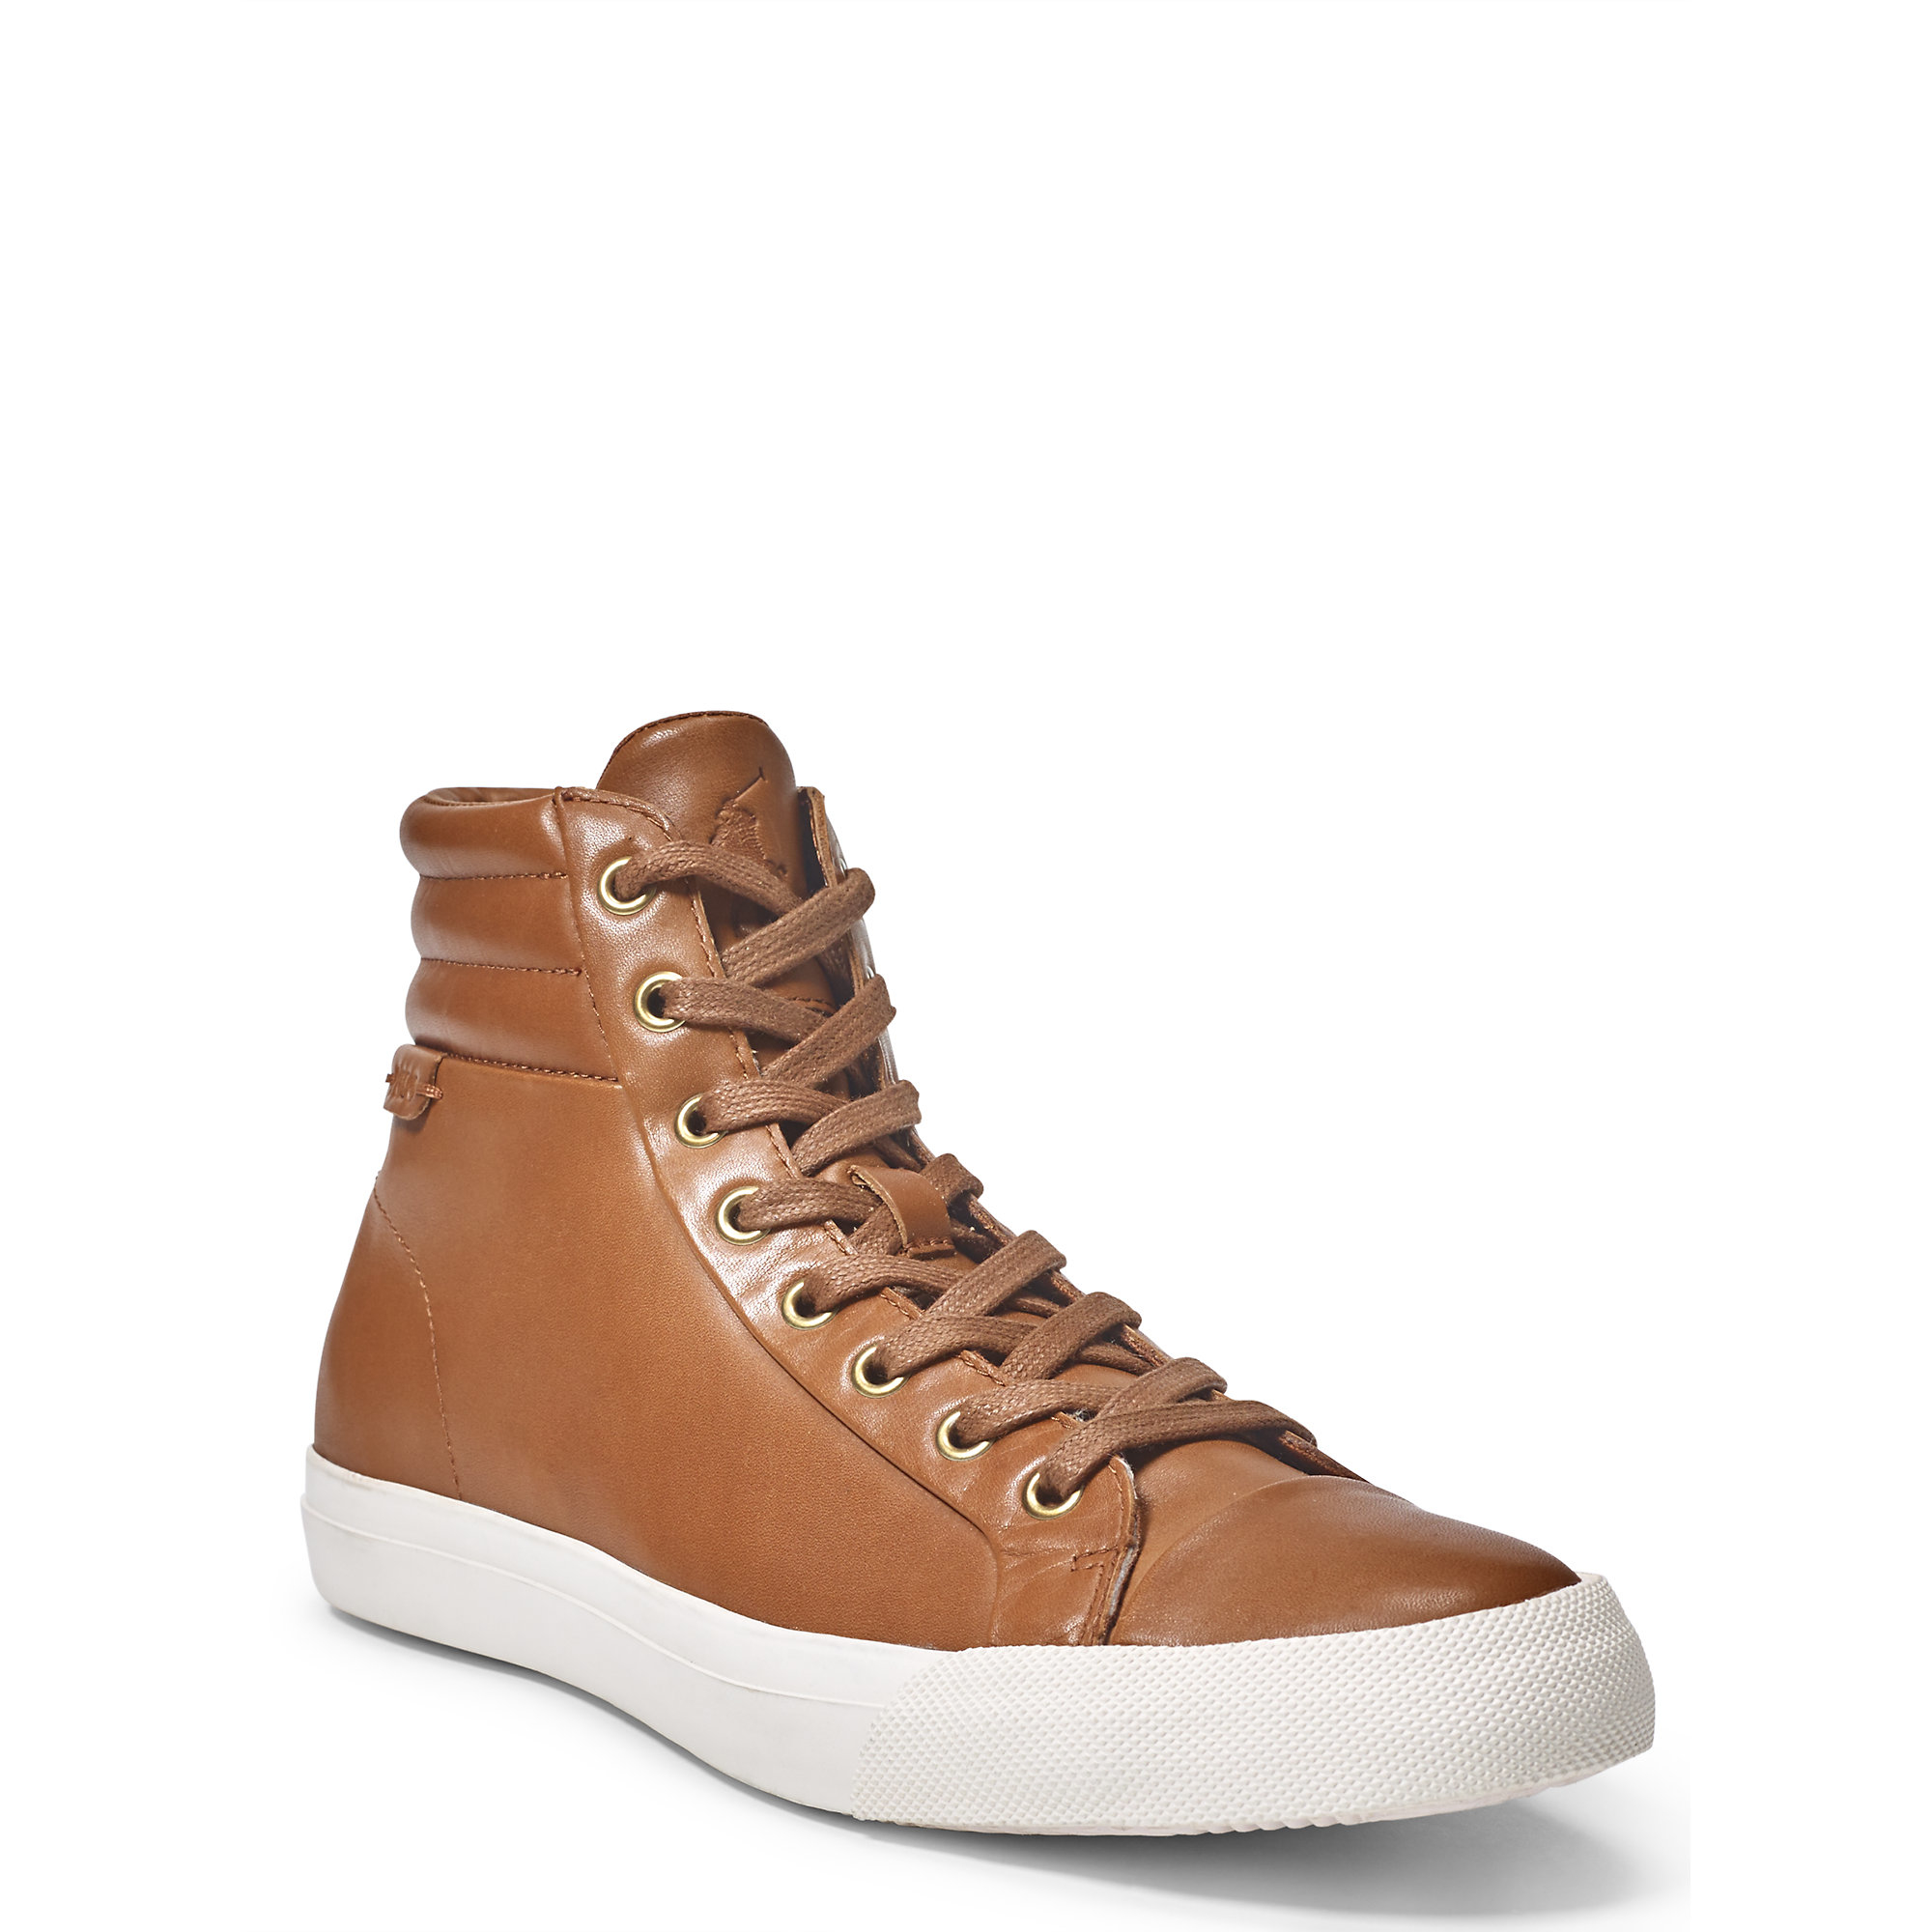 lyst polo ralph lauren geffron leather sneaker in brown for men. Black Bedroom Furniture Sets. Home Design Ideas